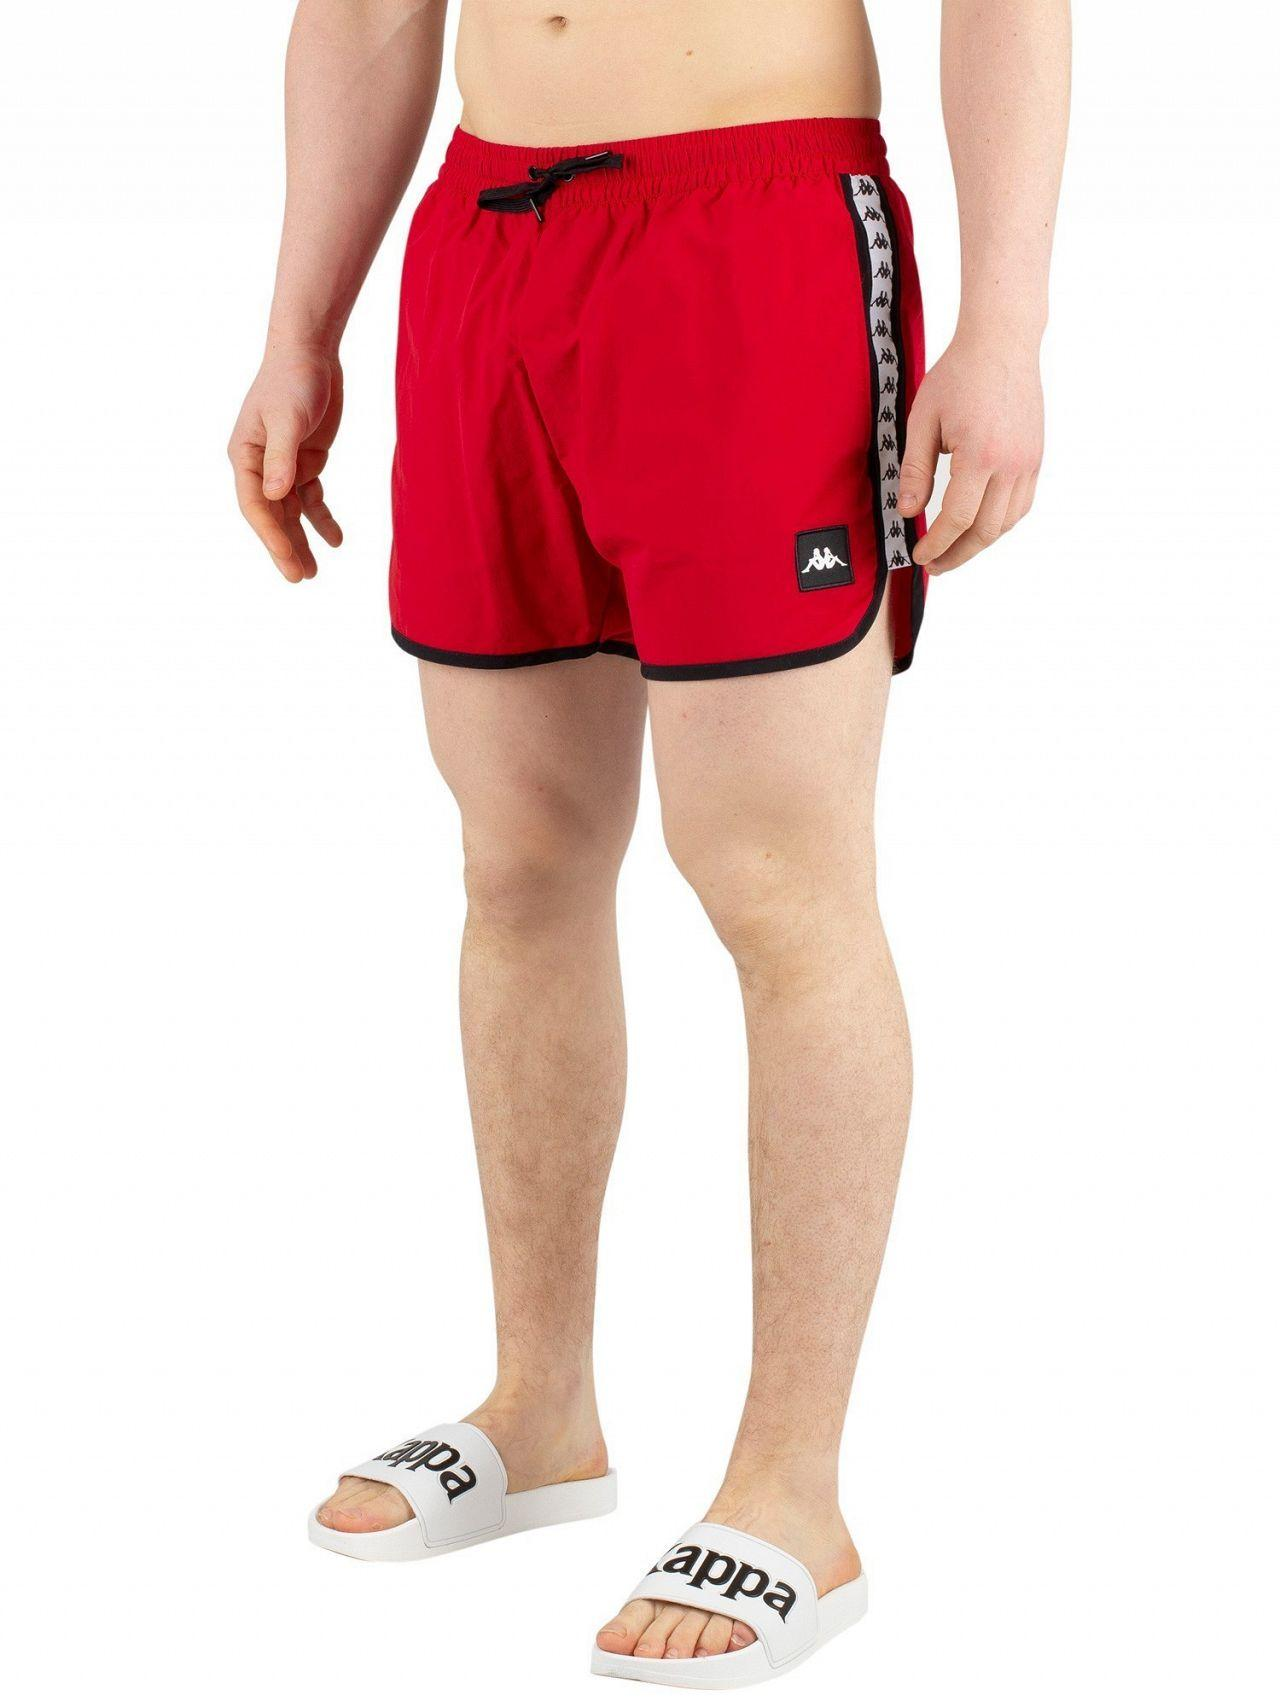 d7e1b40df47ce Kappa Red/white/black Authentic Agius Swim Shorts in Red for Men - Lyst